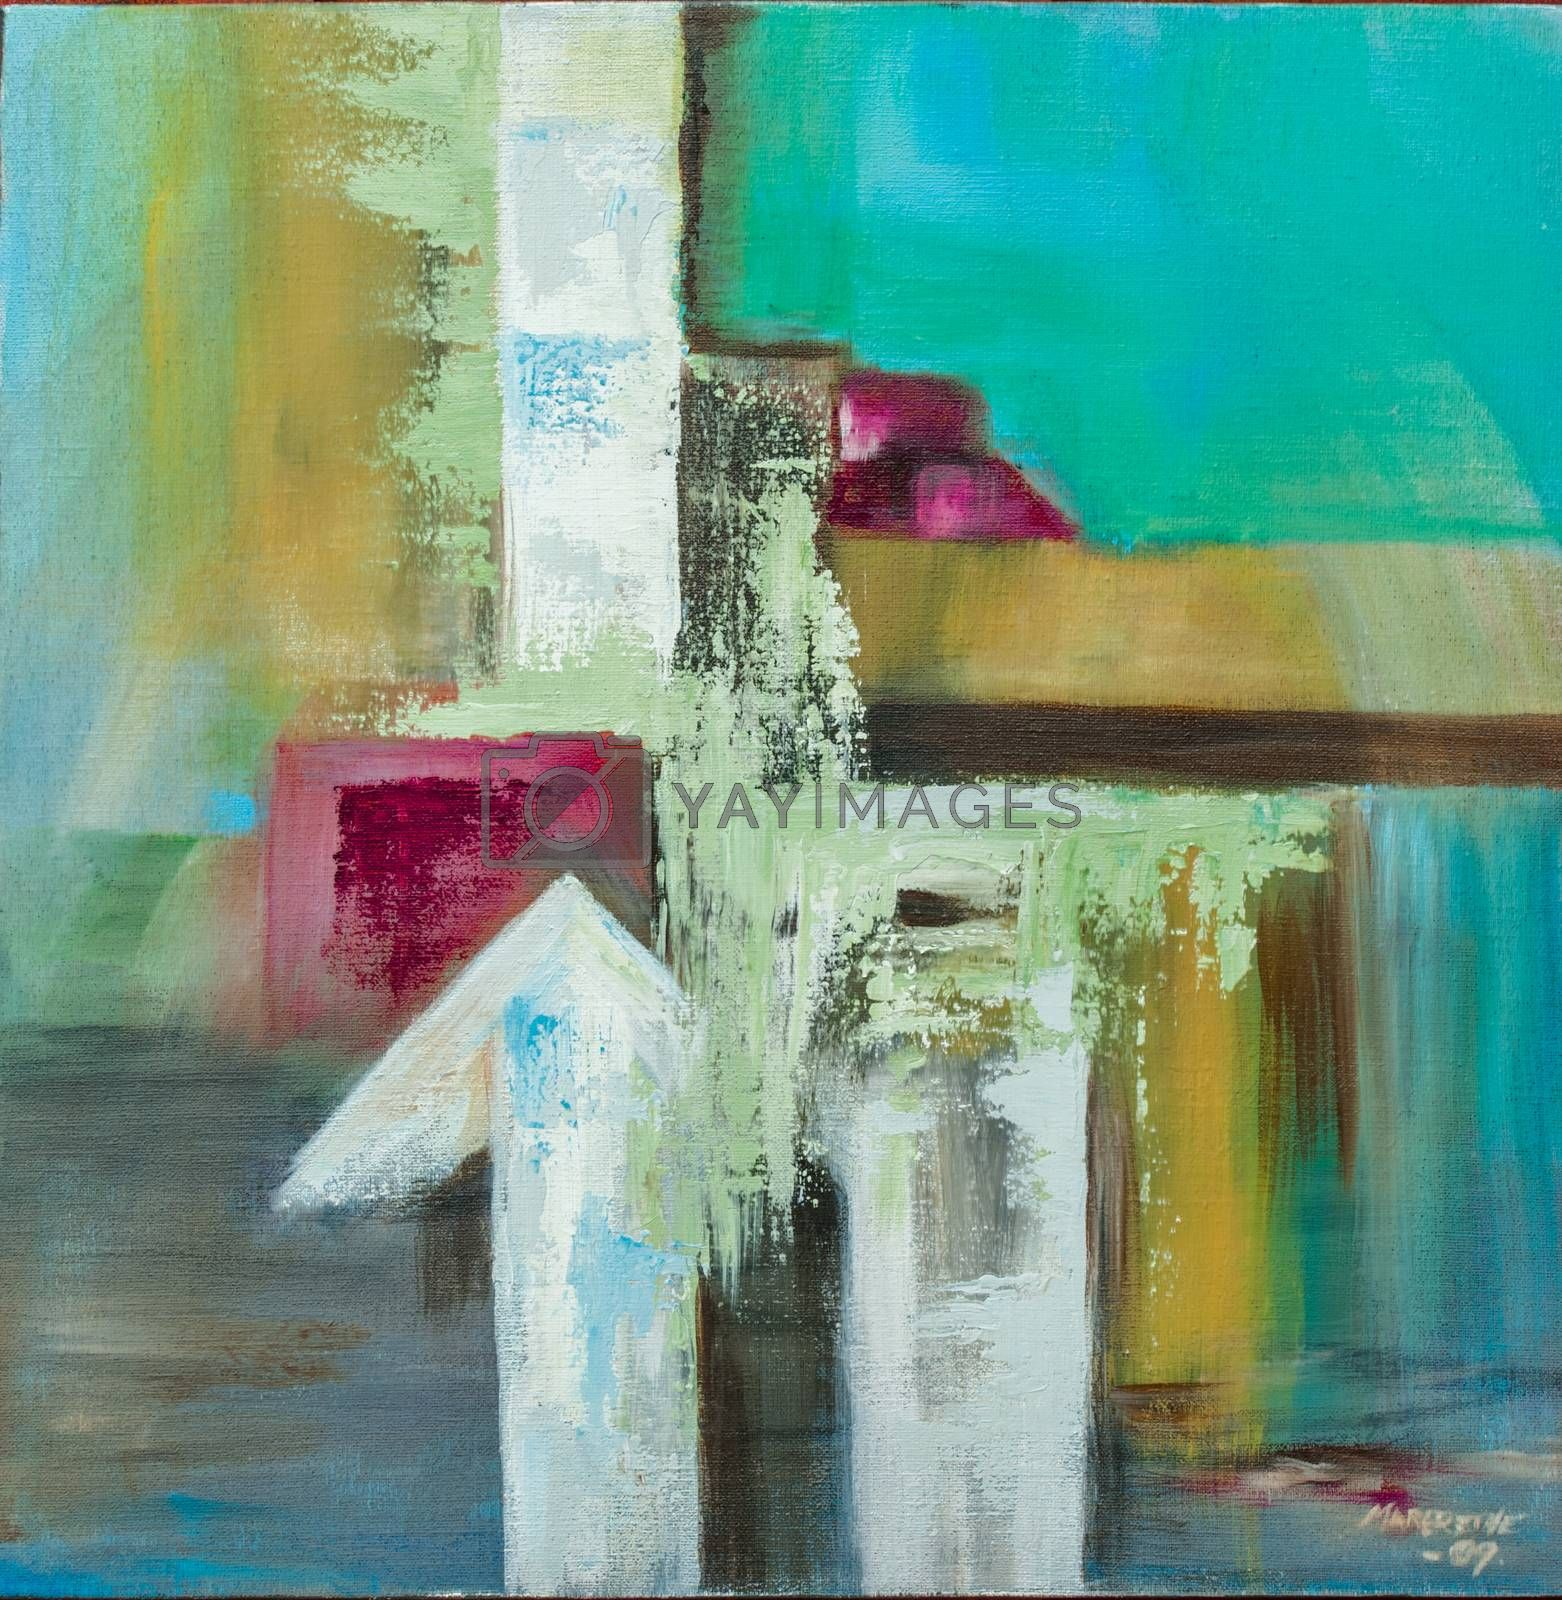 Arrows. Oil painting on canvas, non-figurative.